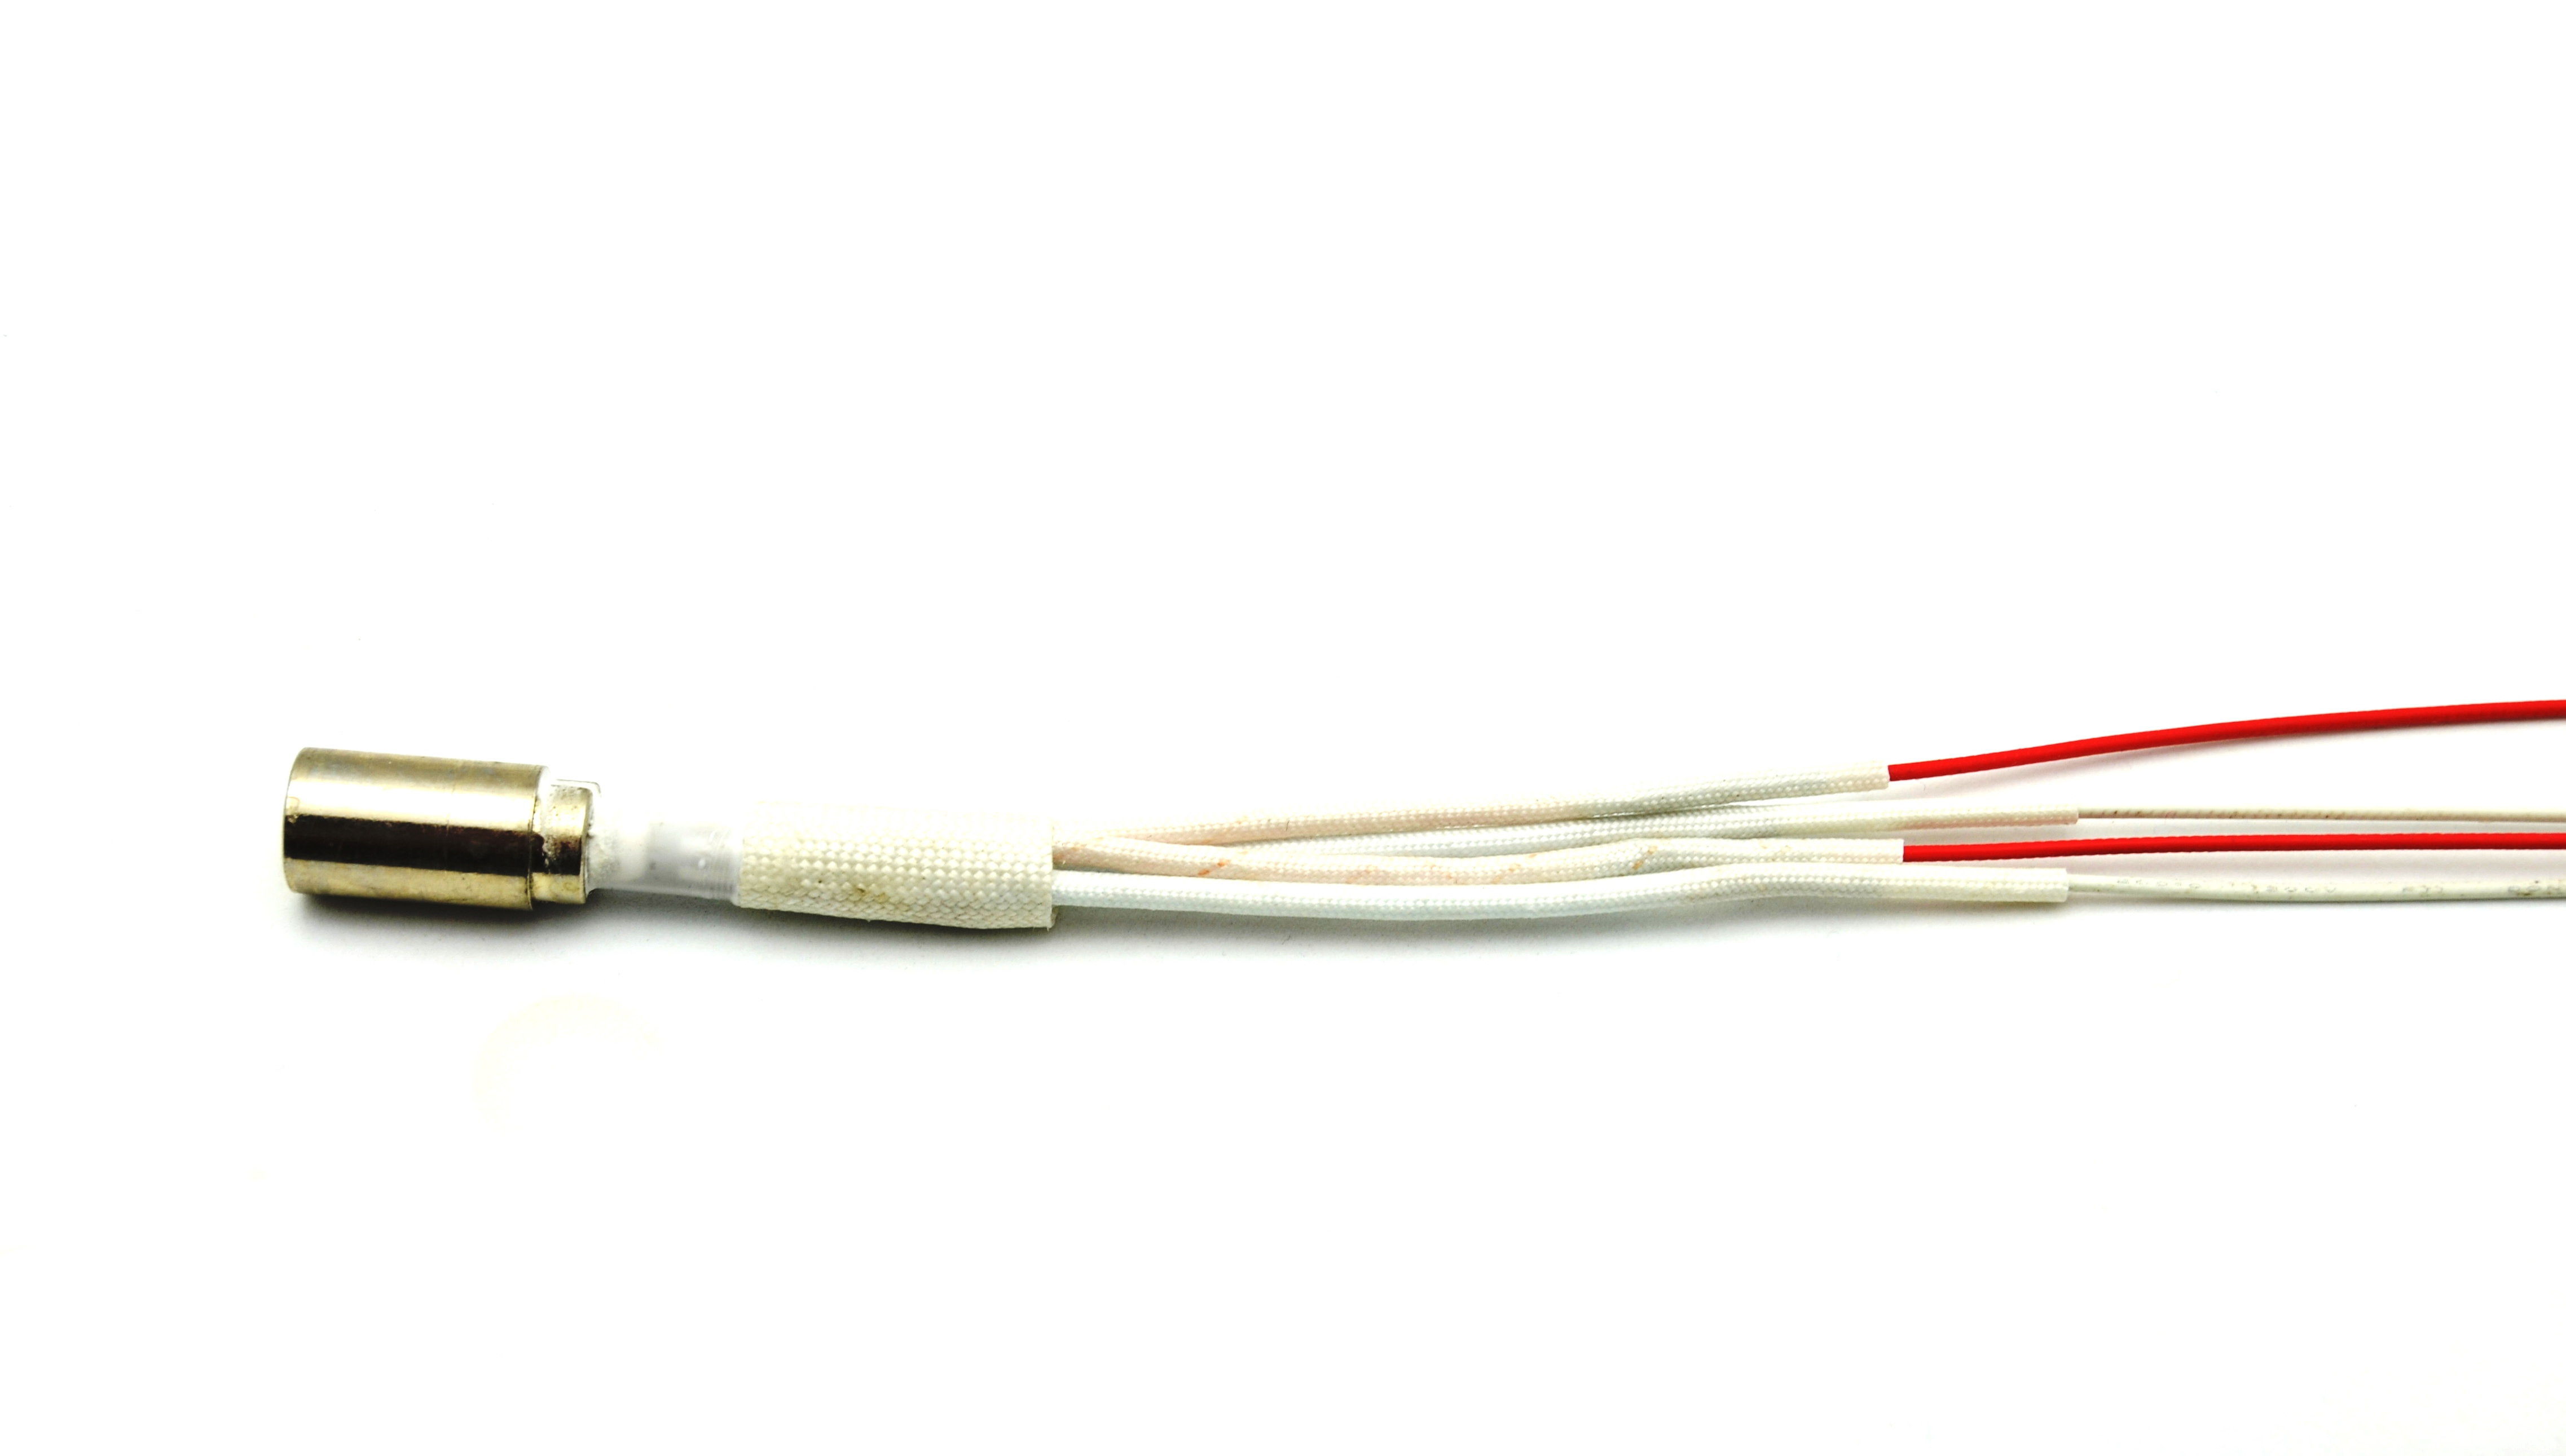 REPLACEMENT HEATING ELEMENT FOR BK3090